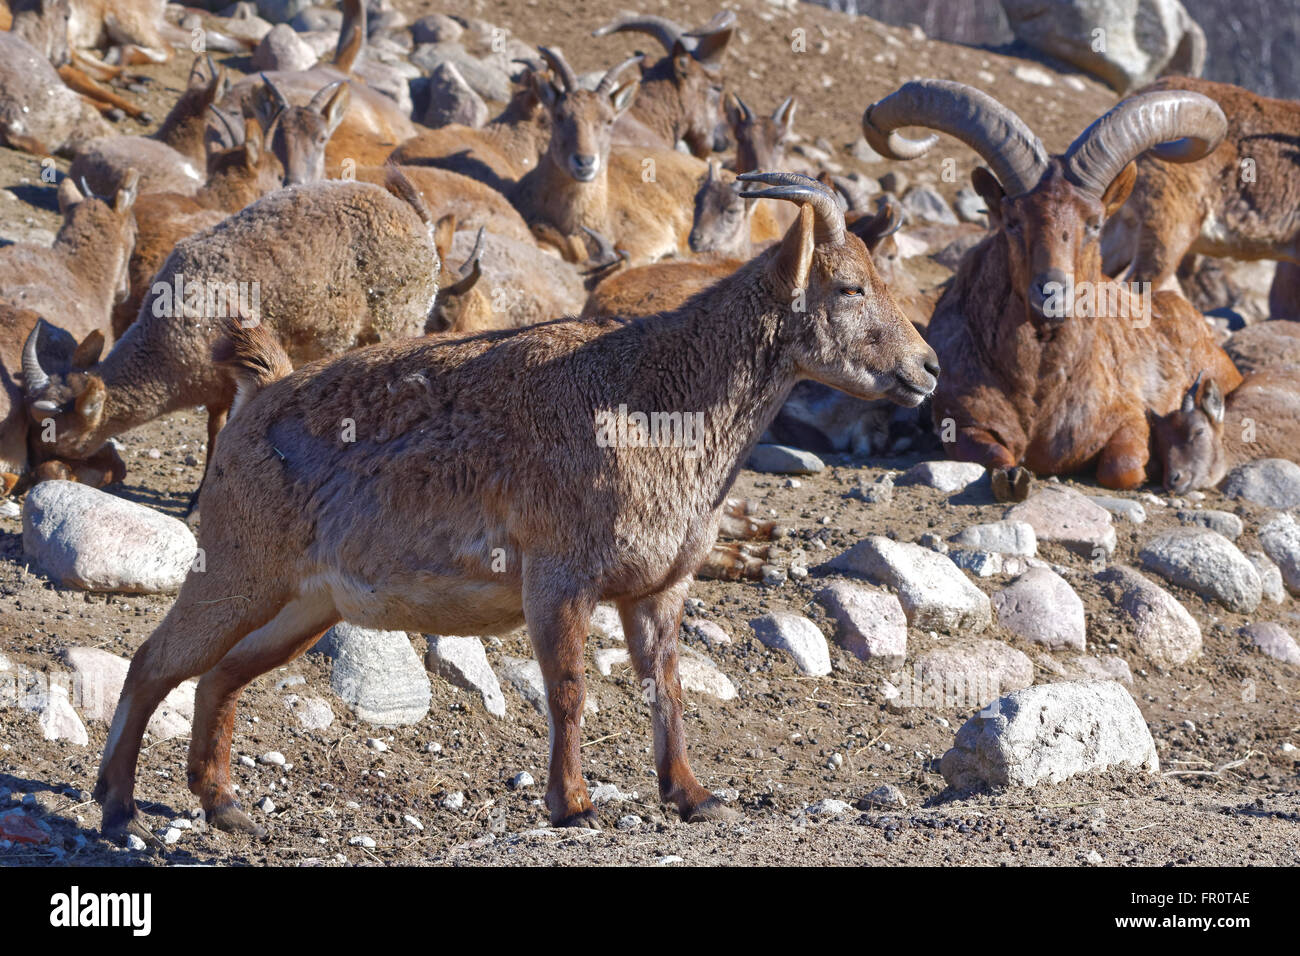 East Caucasian tur or Daghestan tur (Capra caucasica cylindricornis) is a mountain-dwelling caprine in Eastern Caucasus. - Stock Image